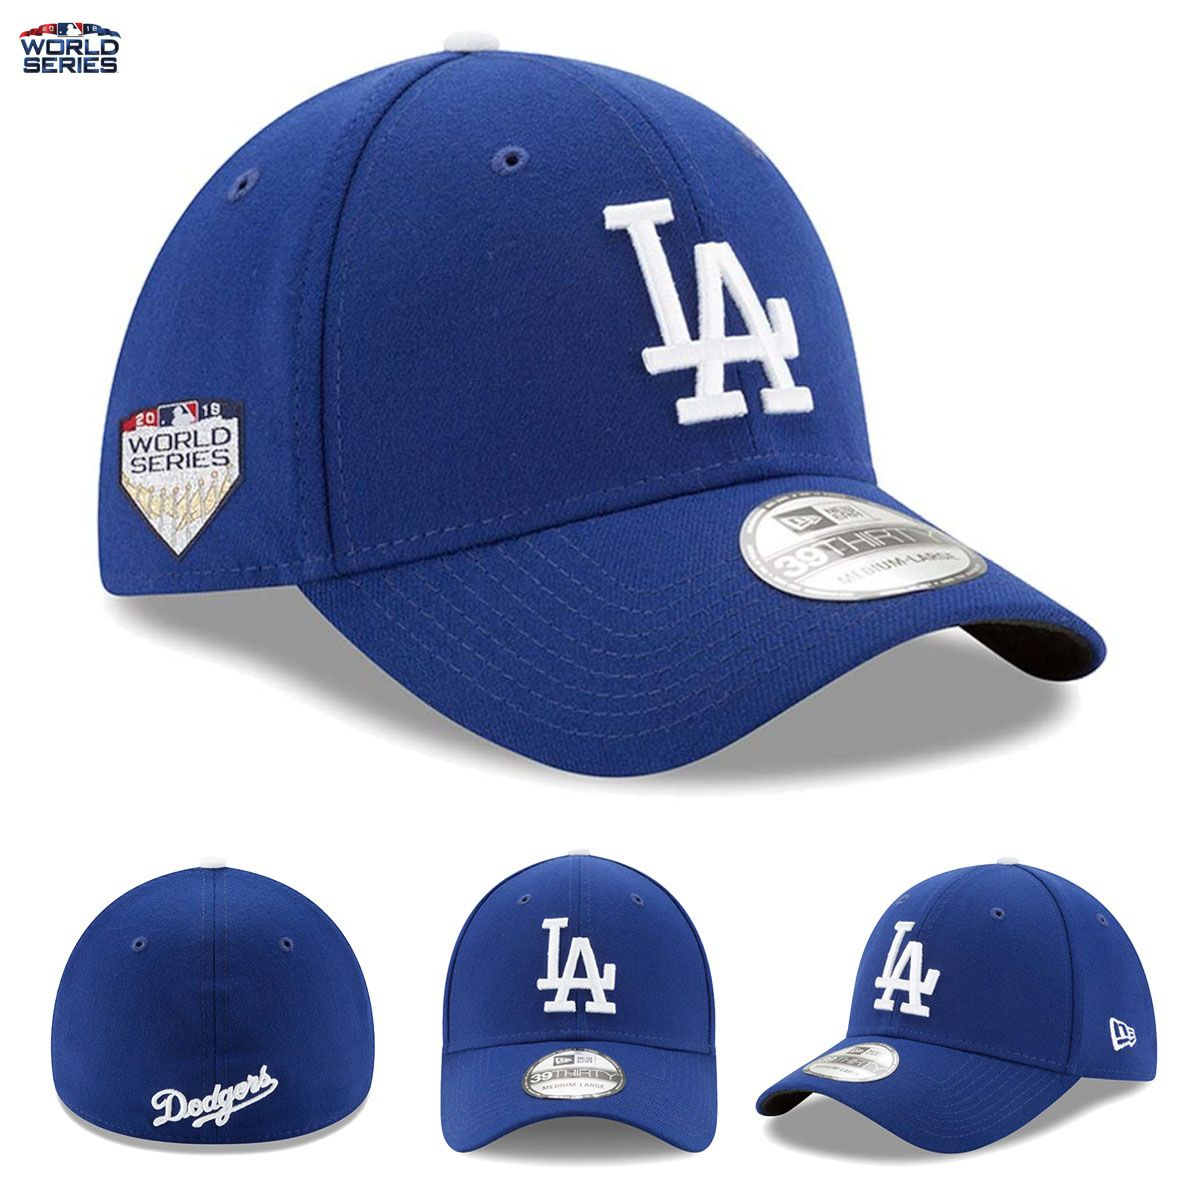 new product 58c0e ac97c Los Angeles Dodgers New Era 39THIRTY Flex Hat 2018 World Series Patch NL  Champs THEY MADE